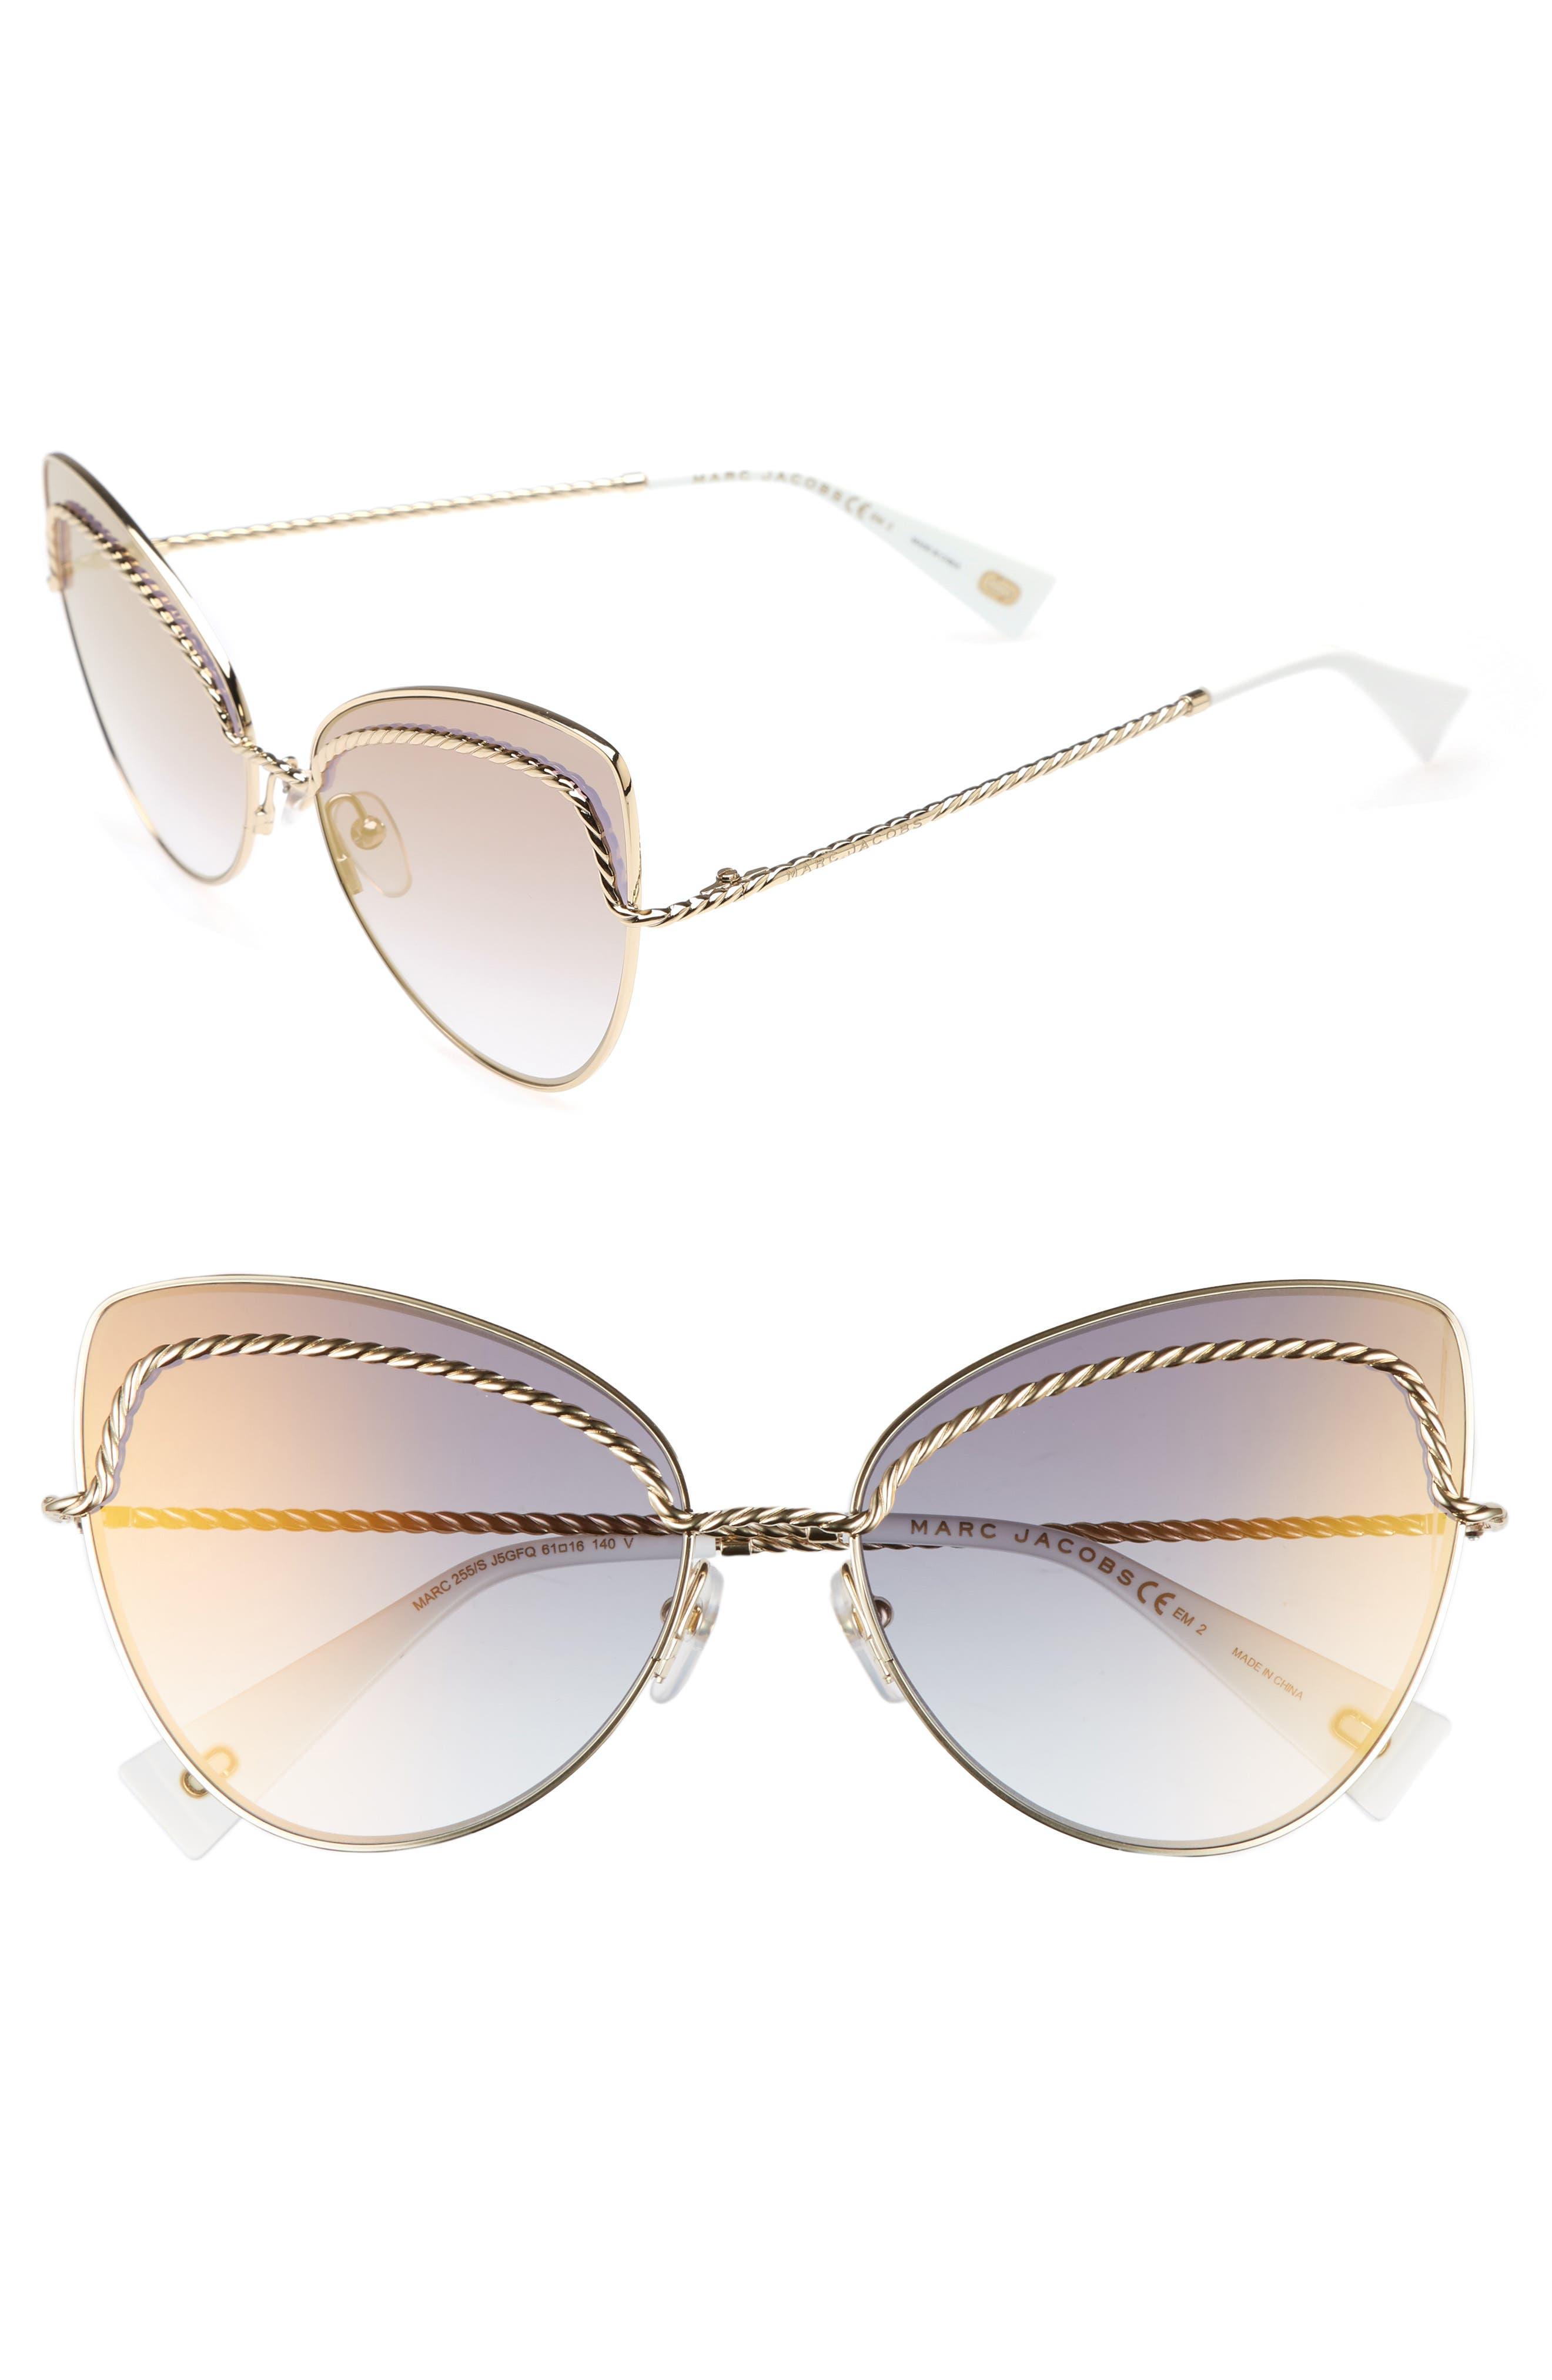 61mm Butterfly Sunglasses,                             Main thumbnail 2, color,